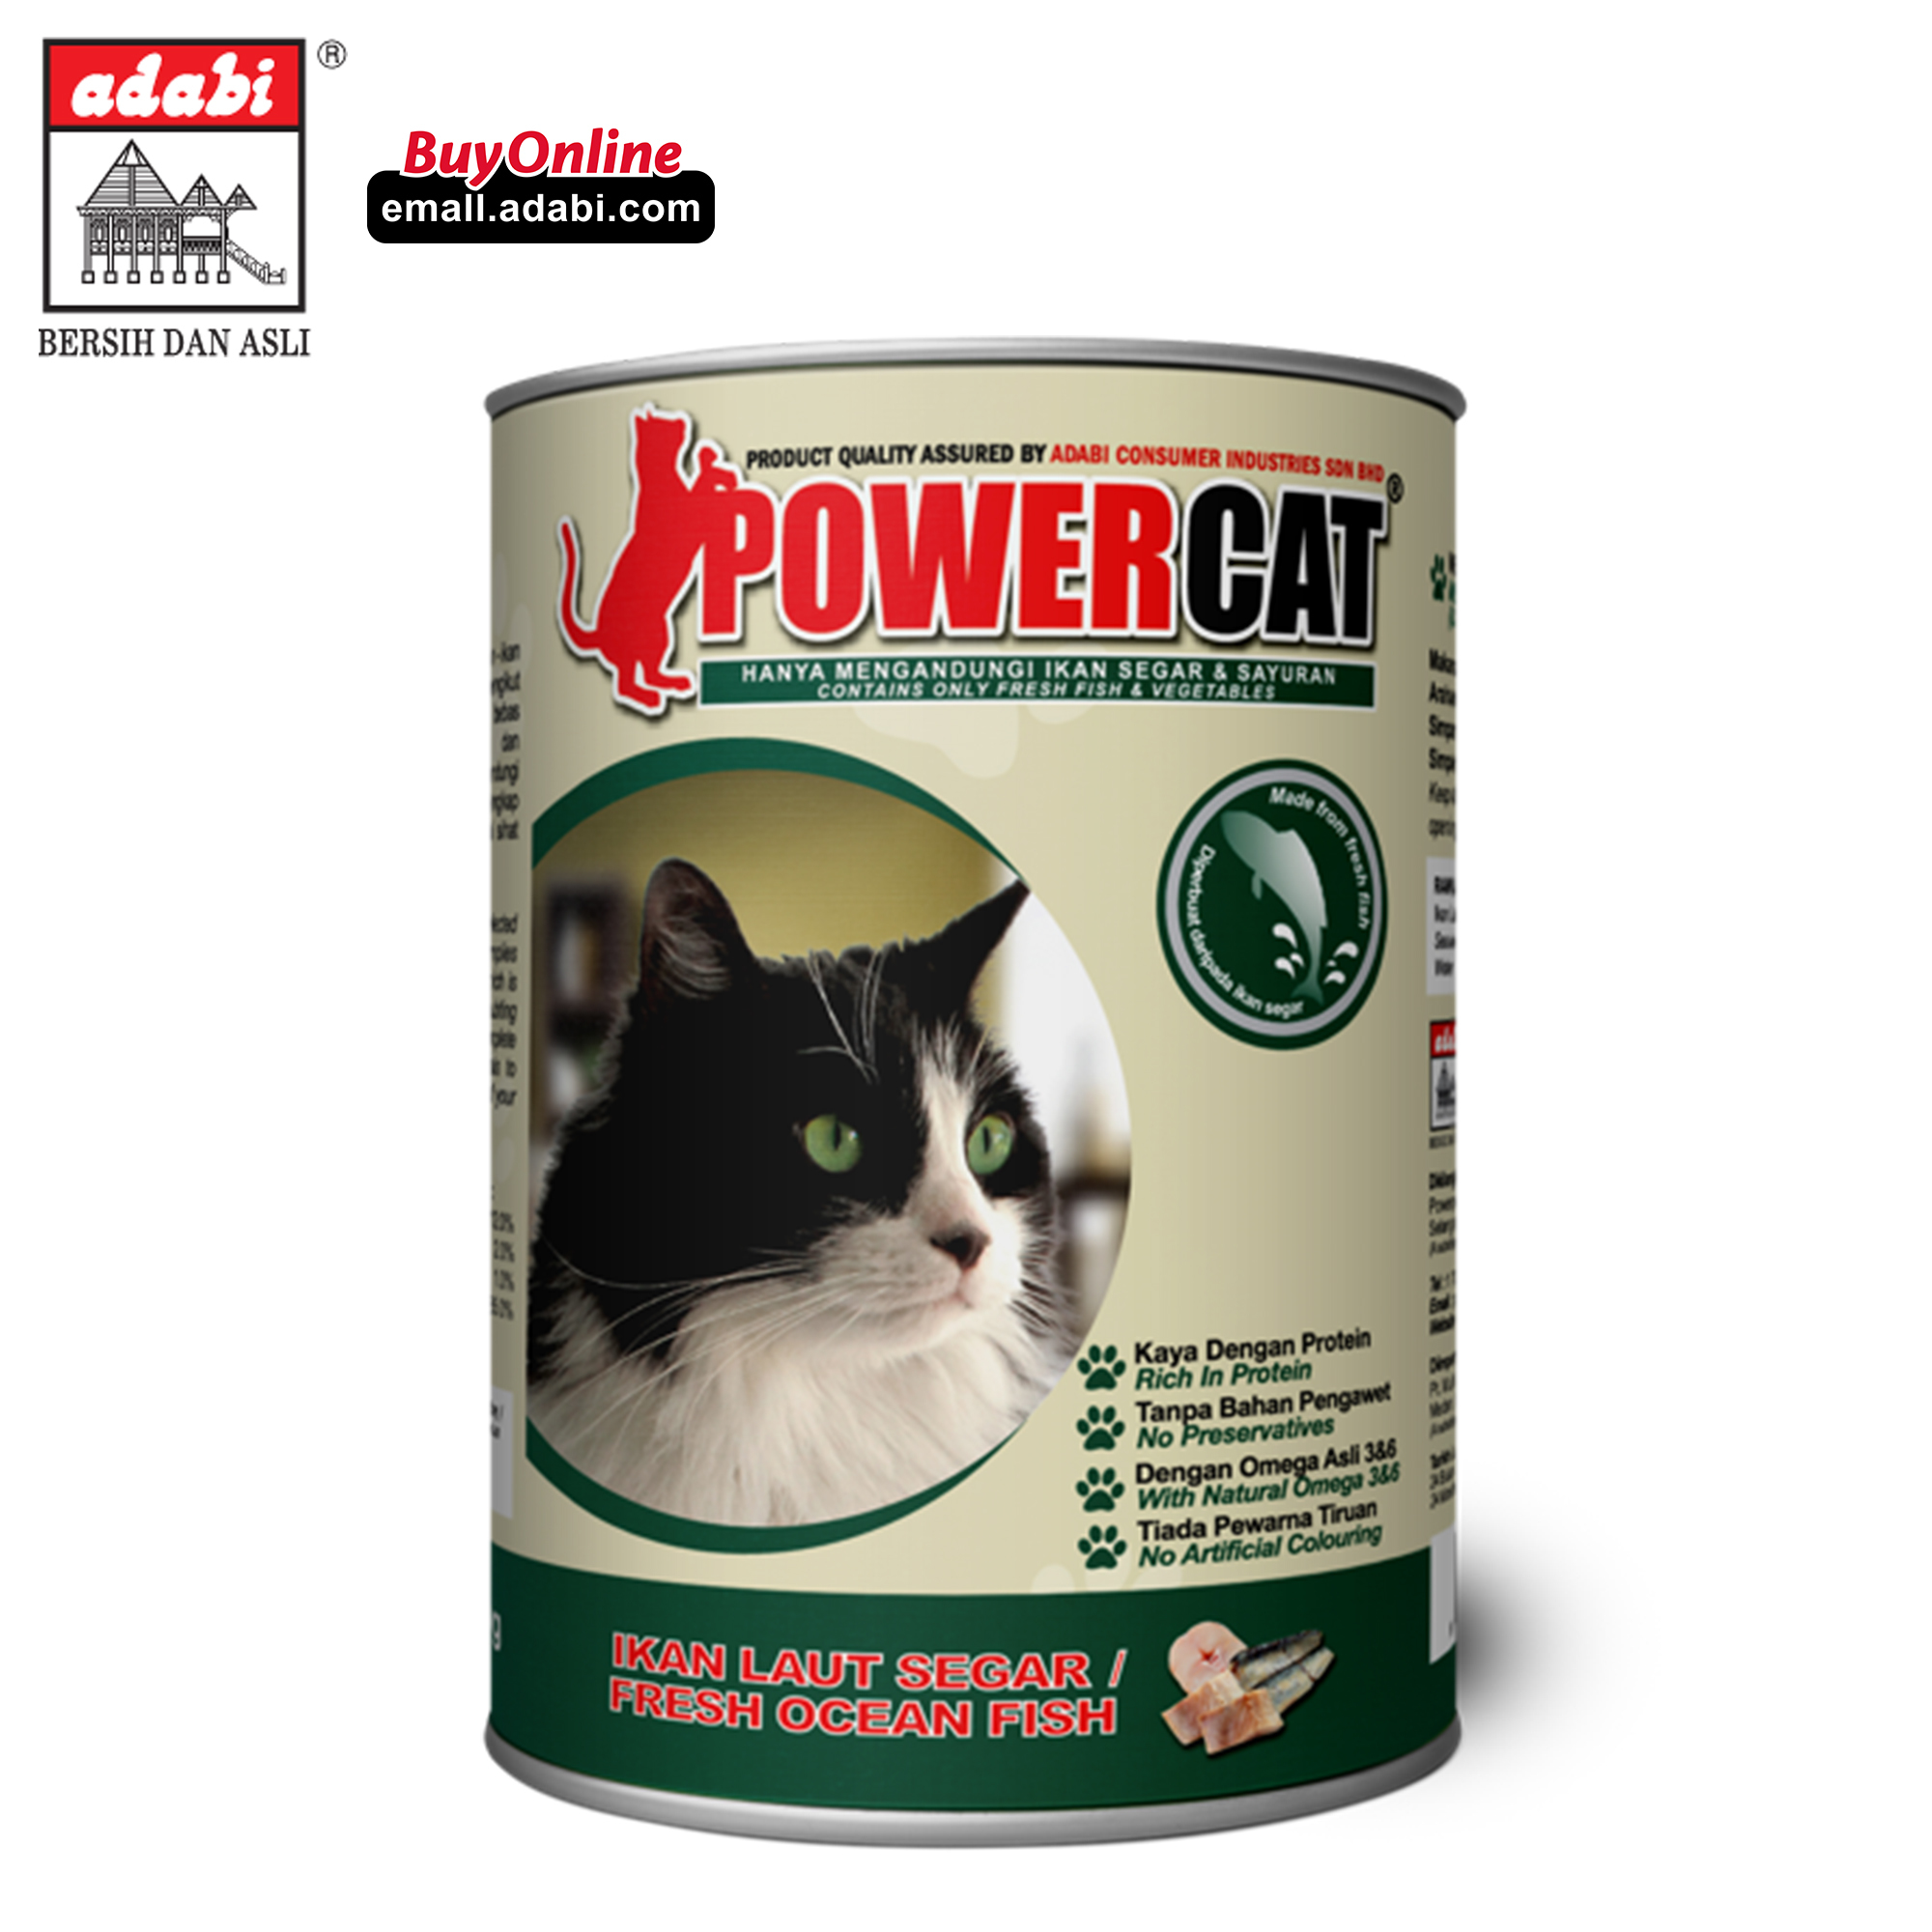 Powercat Ikan Tuna Segar 400g (wet) (2).jpg